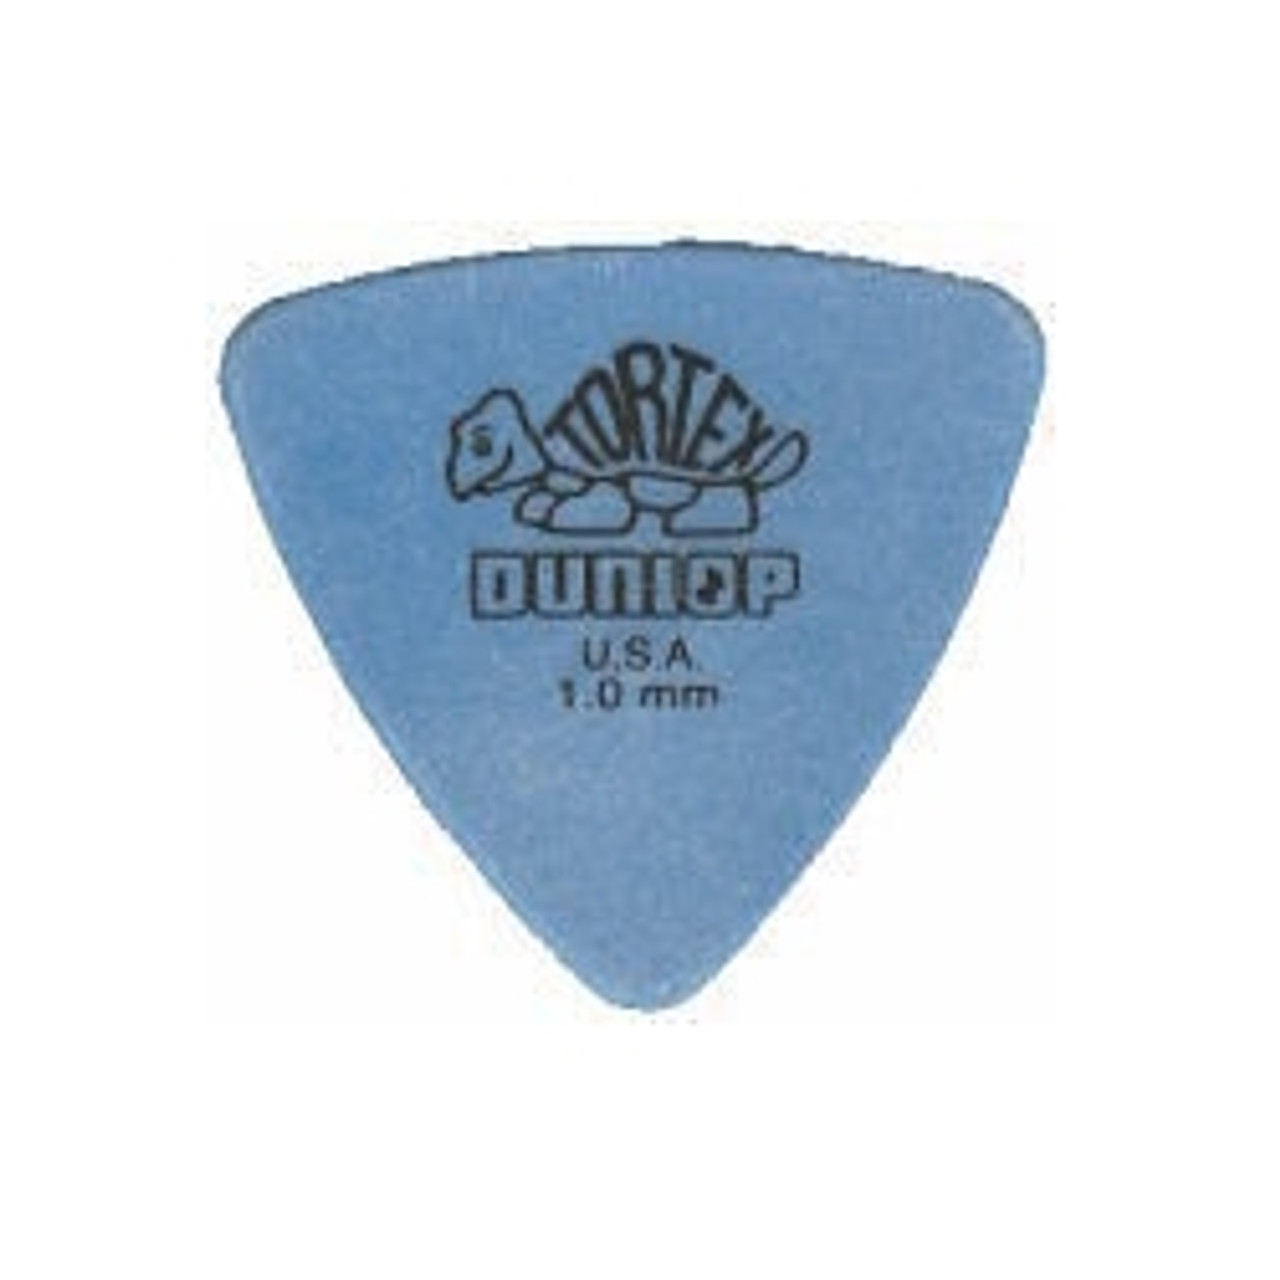 Dunlop Tortex Tri Pick-Blue 1.00mm